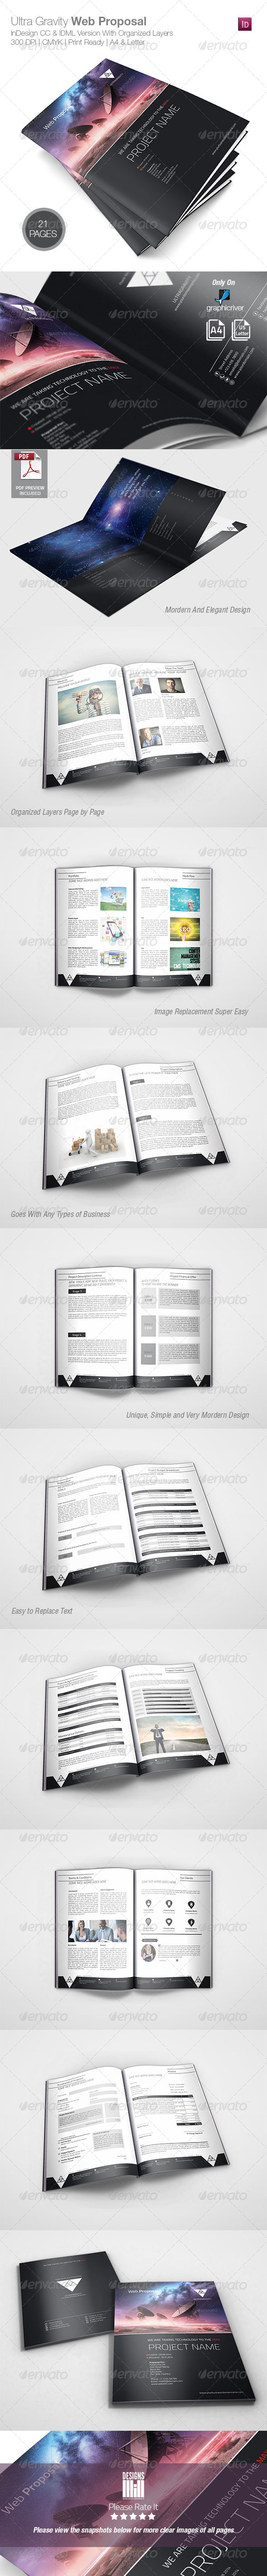 Ultra Gravity Web Proposal - Proposals & Invoices Stationery